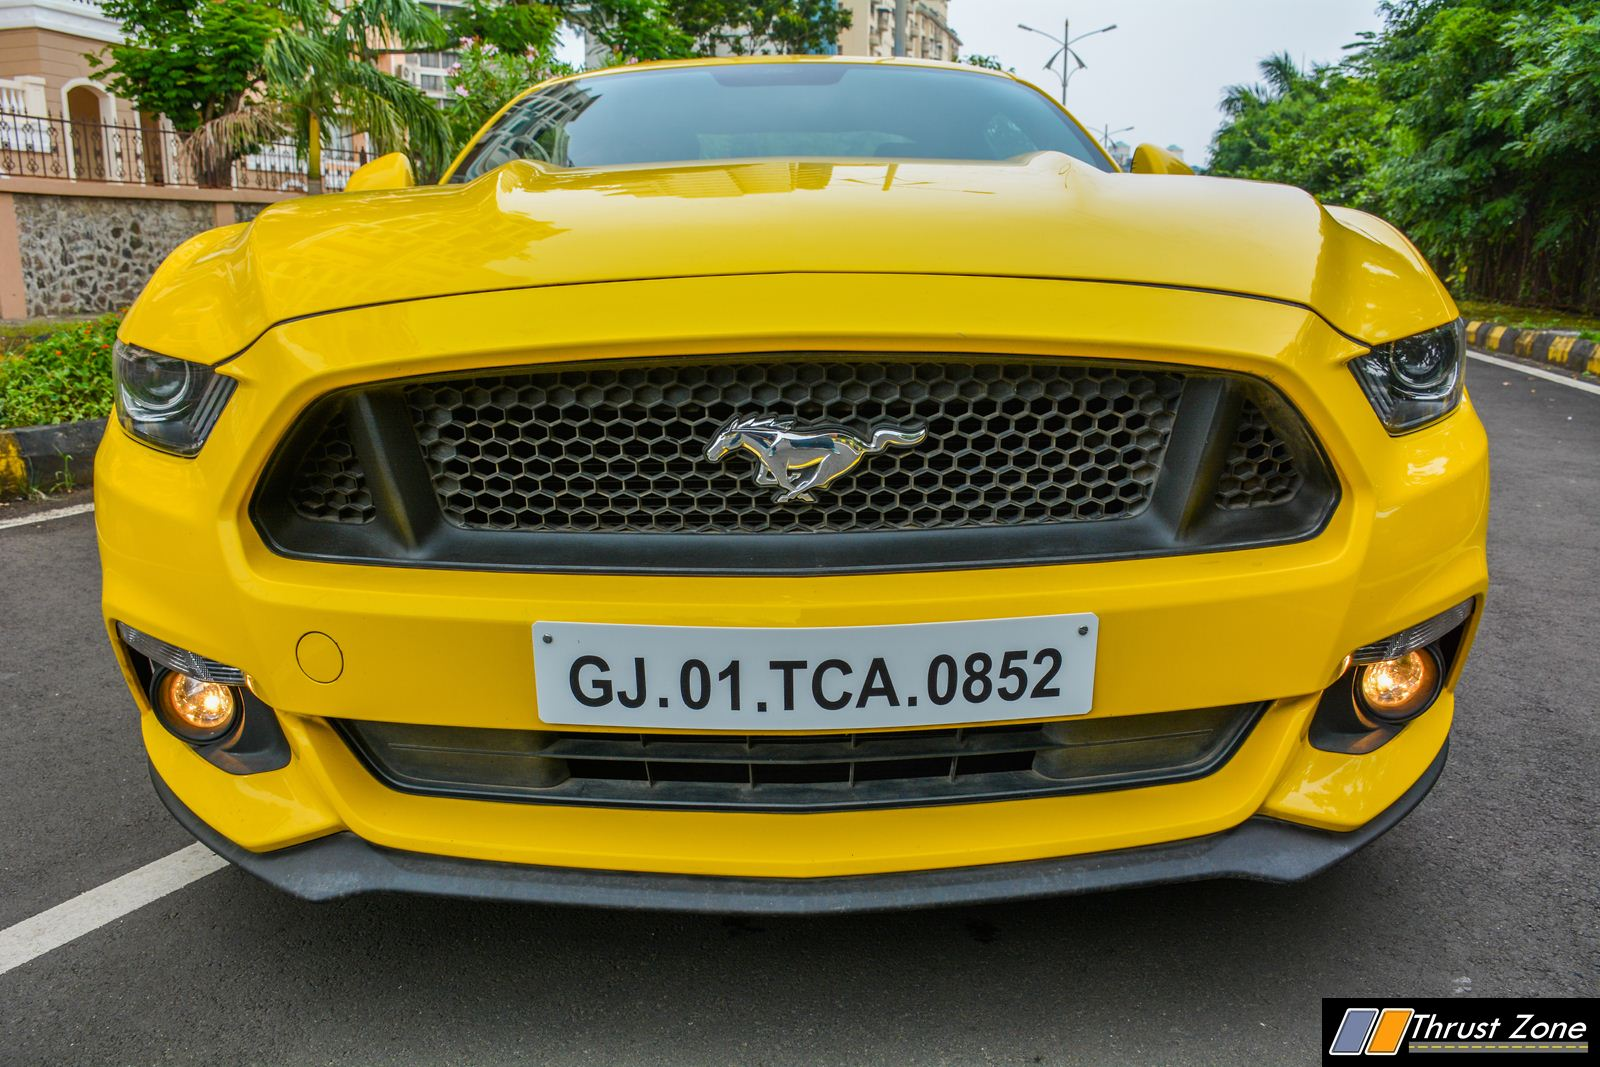 https://www.thrustzone.com/wp-content/uploads/2018/09/Ford-Mustang-India-V8-Review-21.jpg